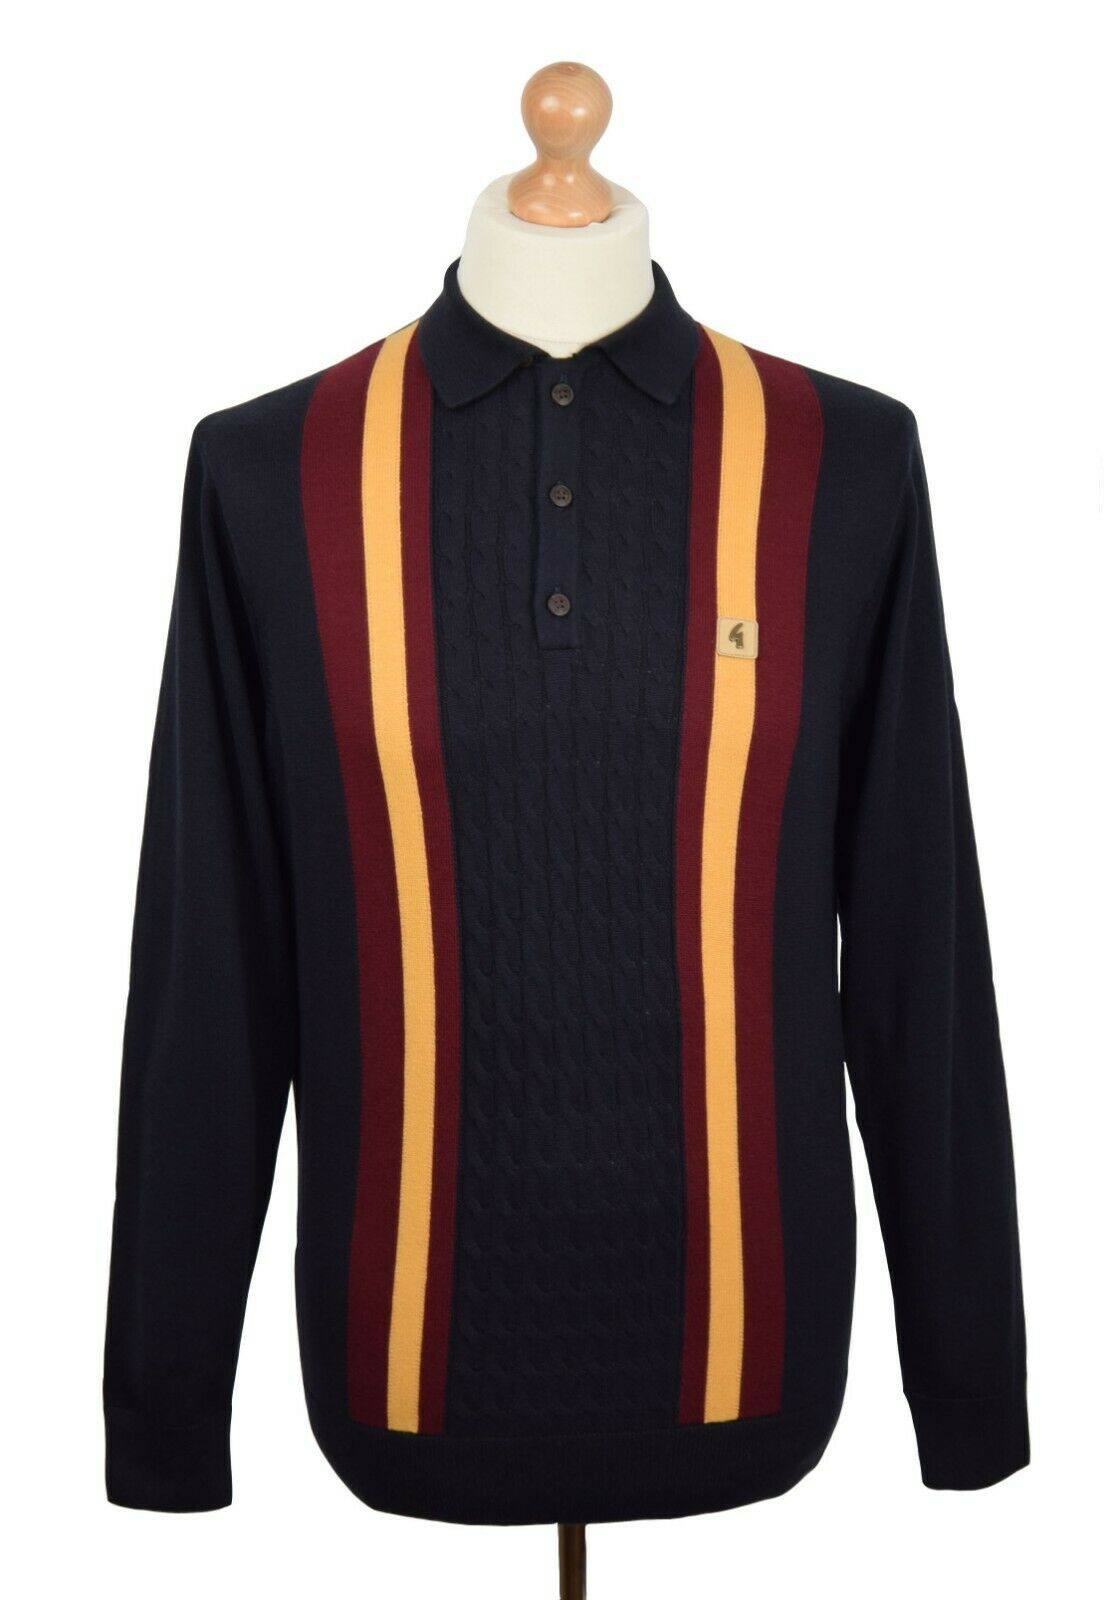 GABICCI VINTAGE NAVY CABLE KNIT TWIN STRIPE POLO MOD CLOTHING NORTHERN SOUL MODS